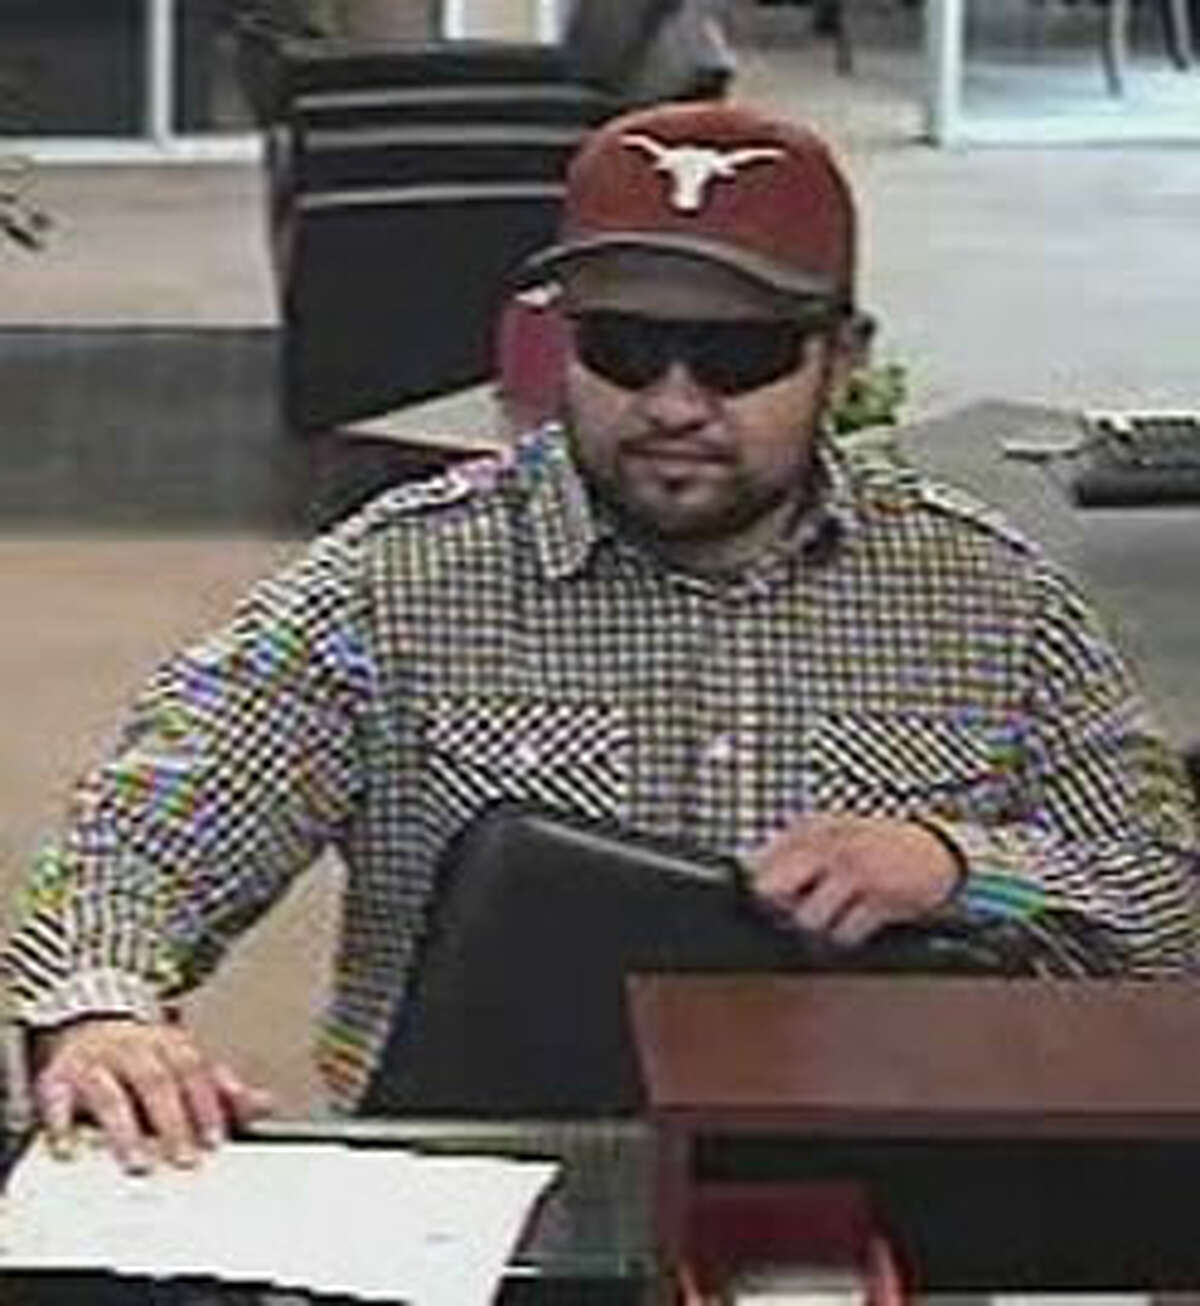 The FBI's Best & Worst Bandit Nicknames A serial Houston-area bank robber nicknamed the Texas Longhorn Bandit for the hat he wears is believed to have been involved in two robberies on Jan. 14, 2015.